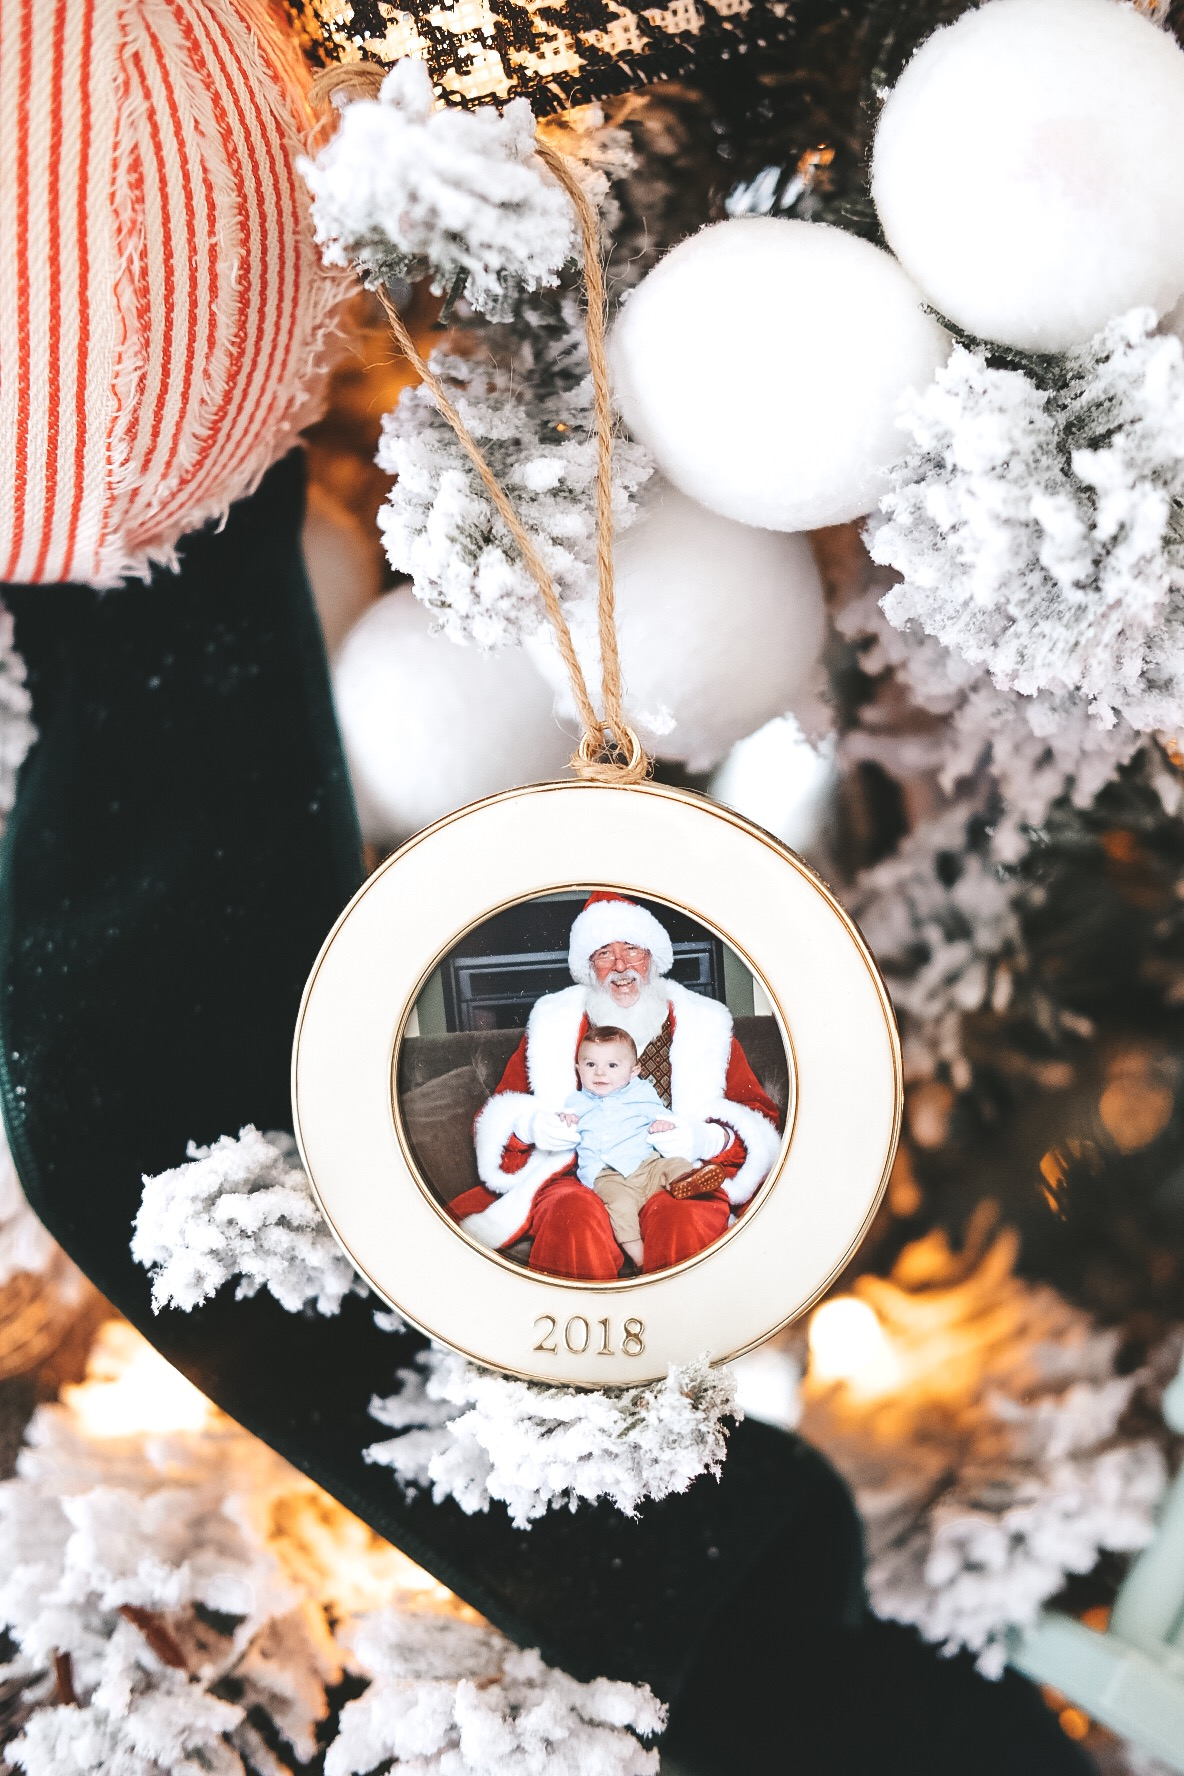 Dated ornament for yearly Santa photos.